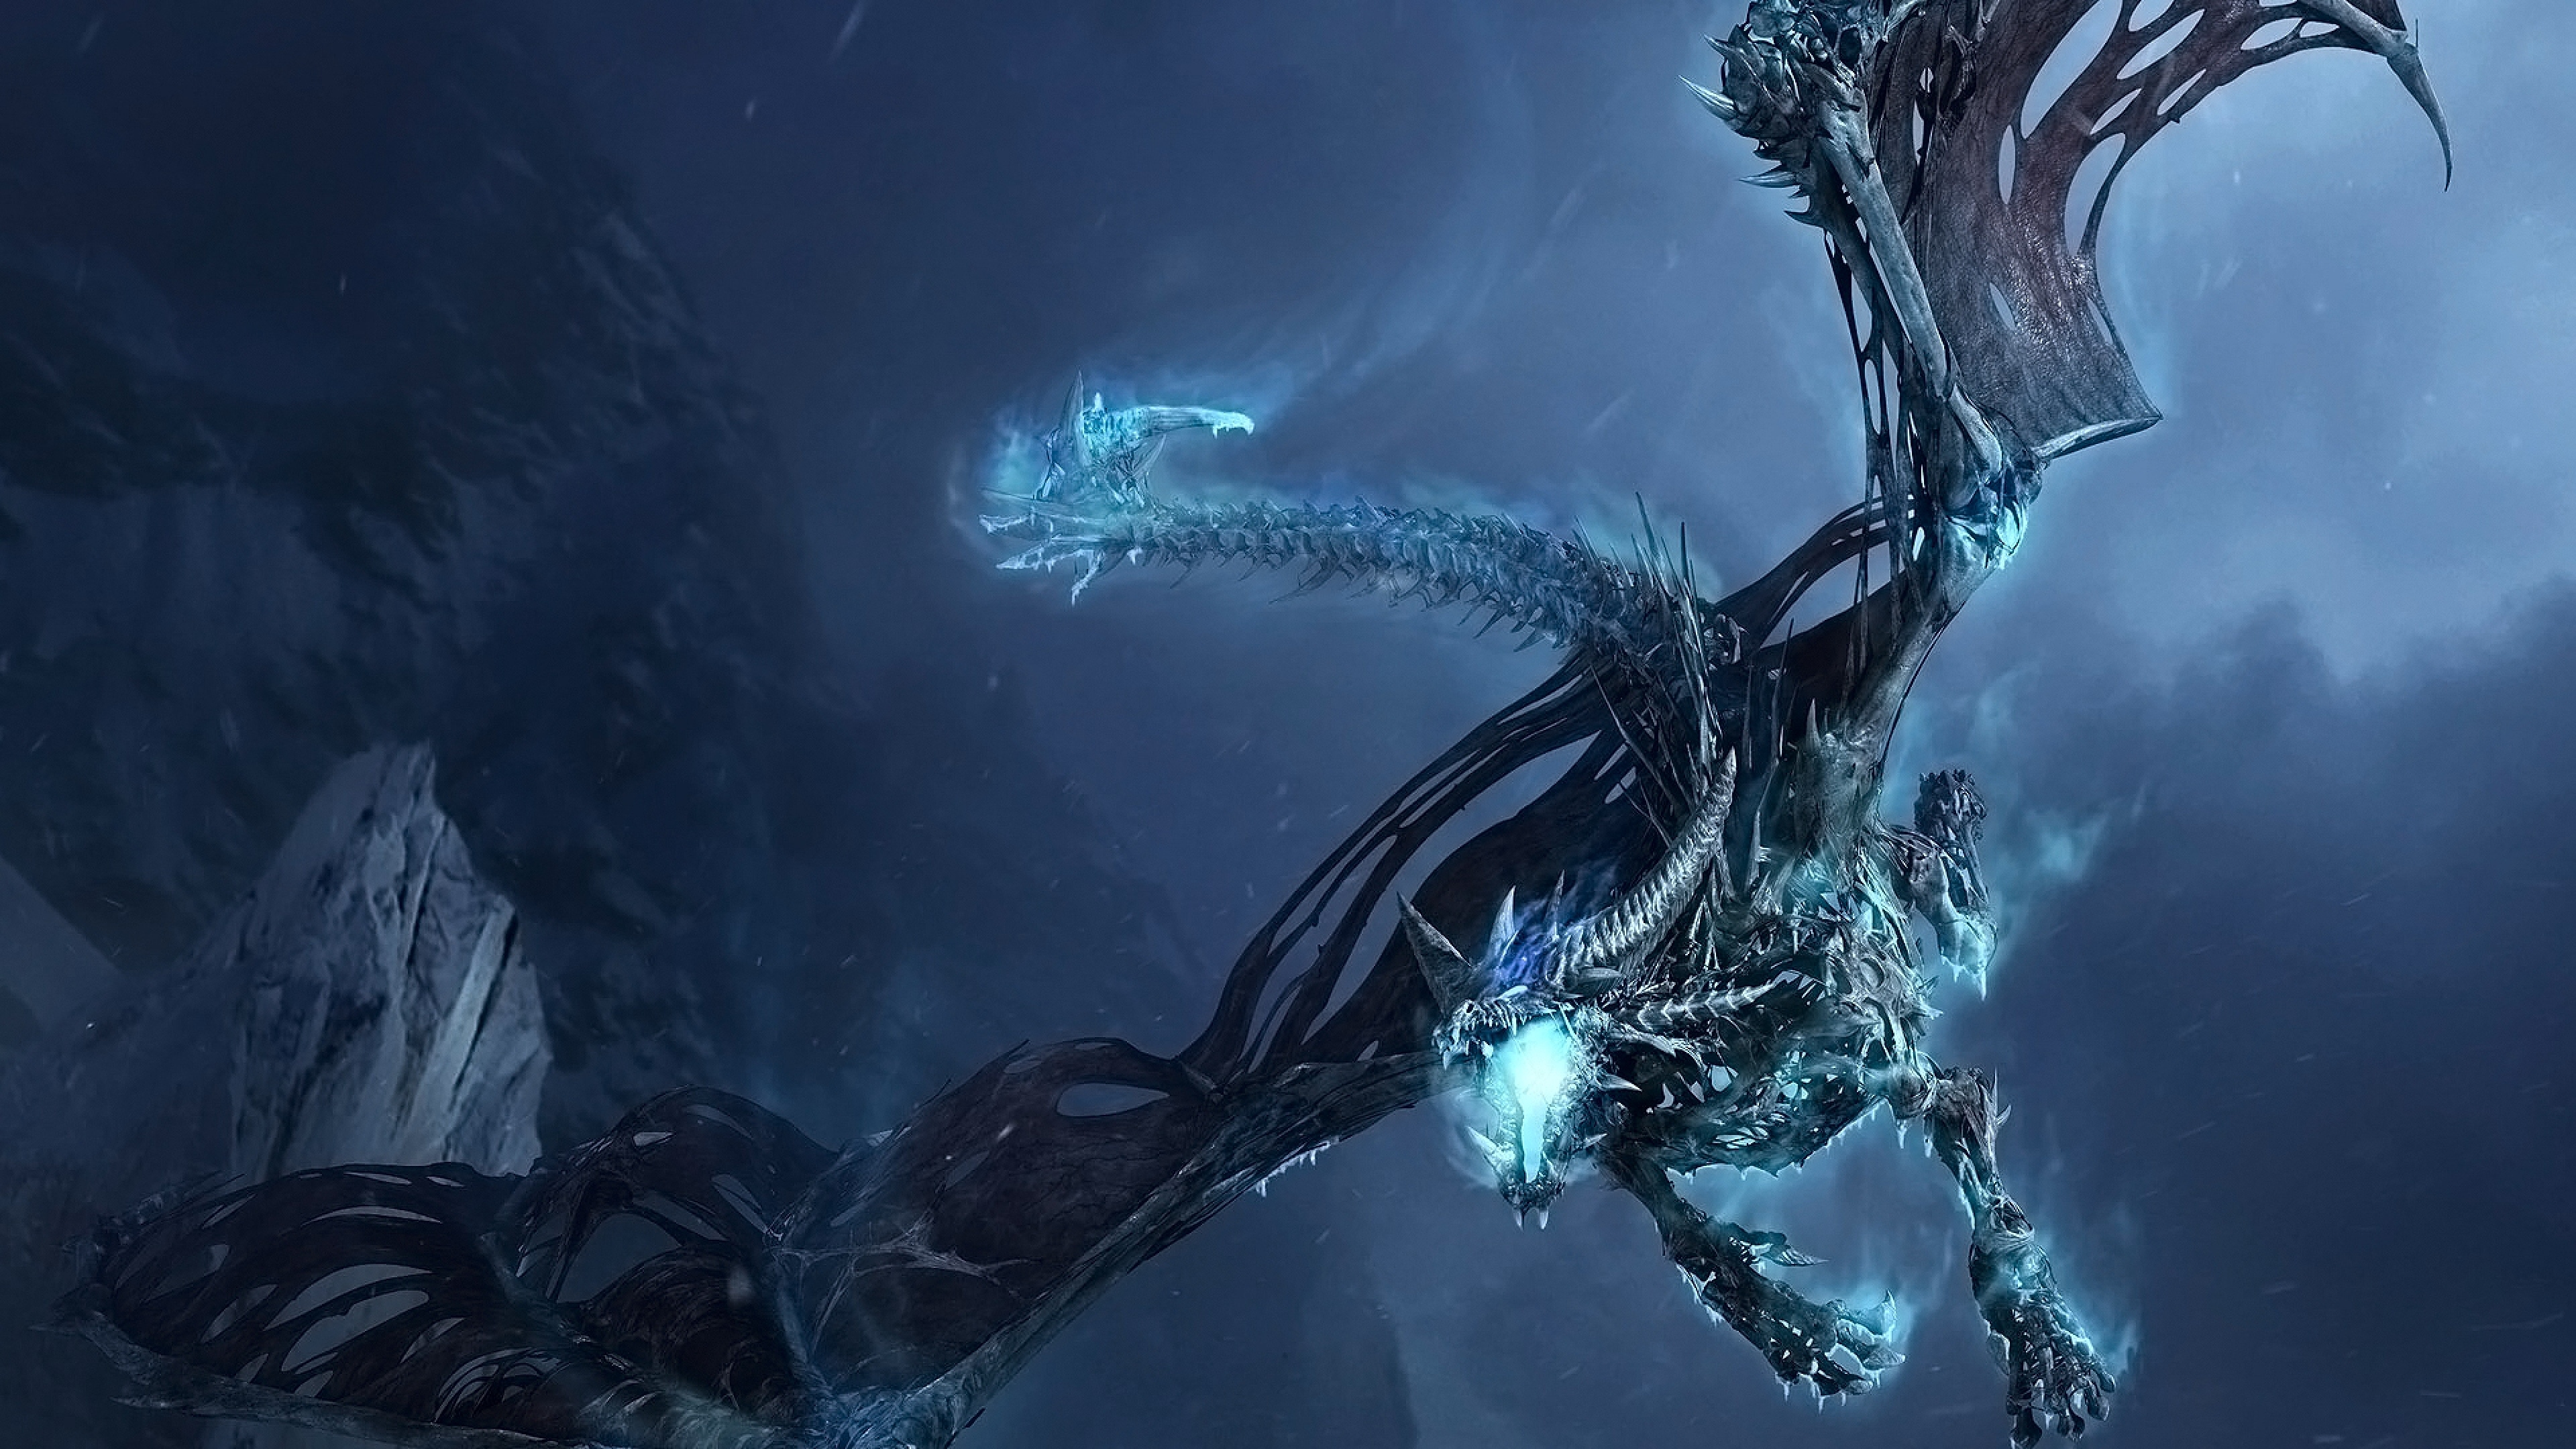 3840x2160 World of warcraft Dragon Cold Fly Tail Wings Wallpaper 3840x2160